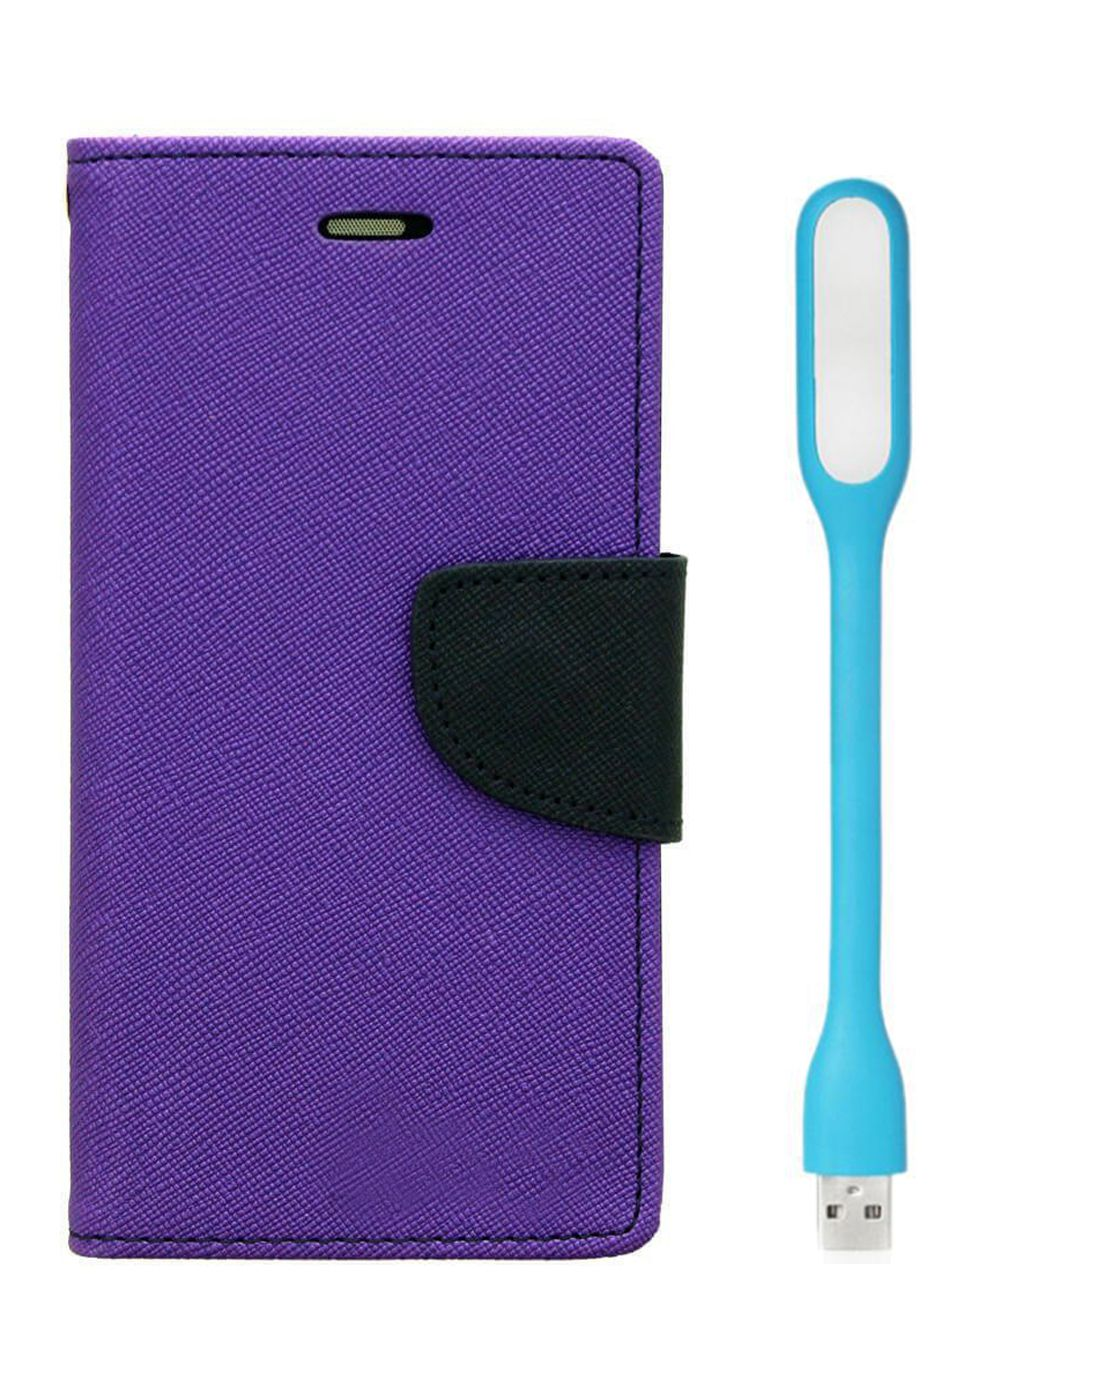 Wallet Flip Case Back Cover For HTC 526 - (Purple) + Flexible Mini LED Stick Lamp Light By Style Crome